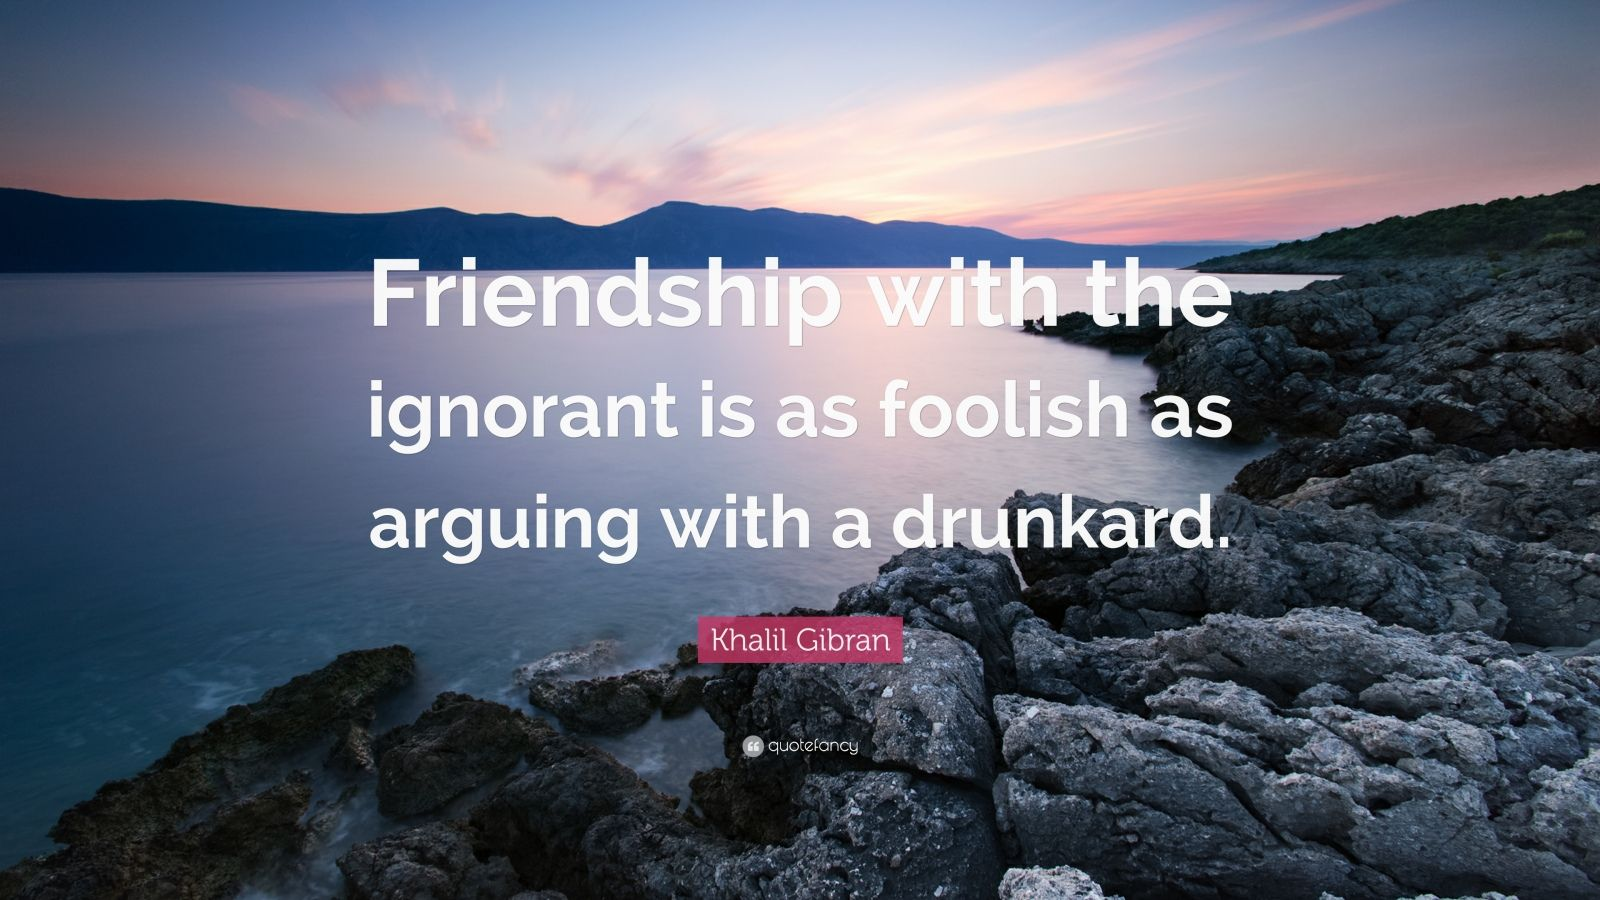 """Khalil Gibran Quote: """"Friendship with the ignorant is as foolish as arguing with a drunkard."""""""